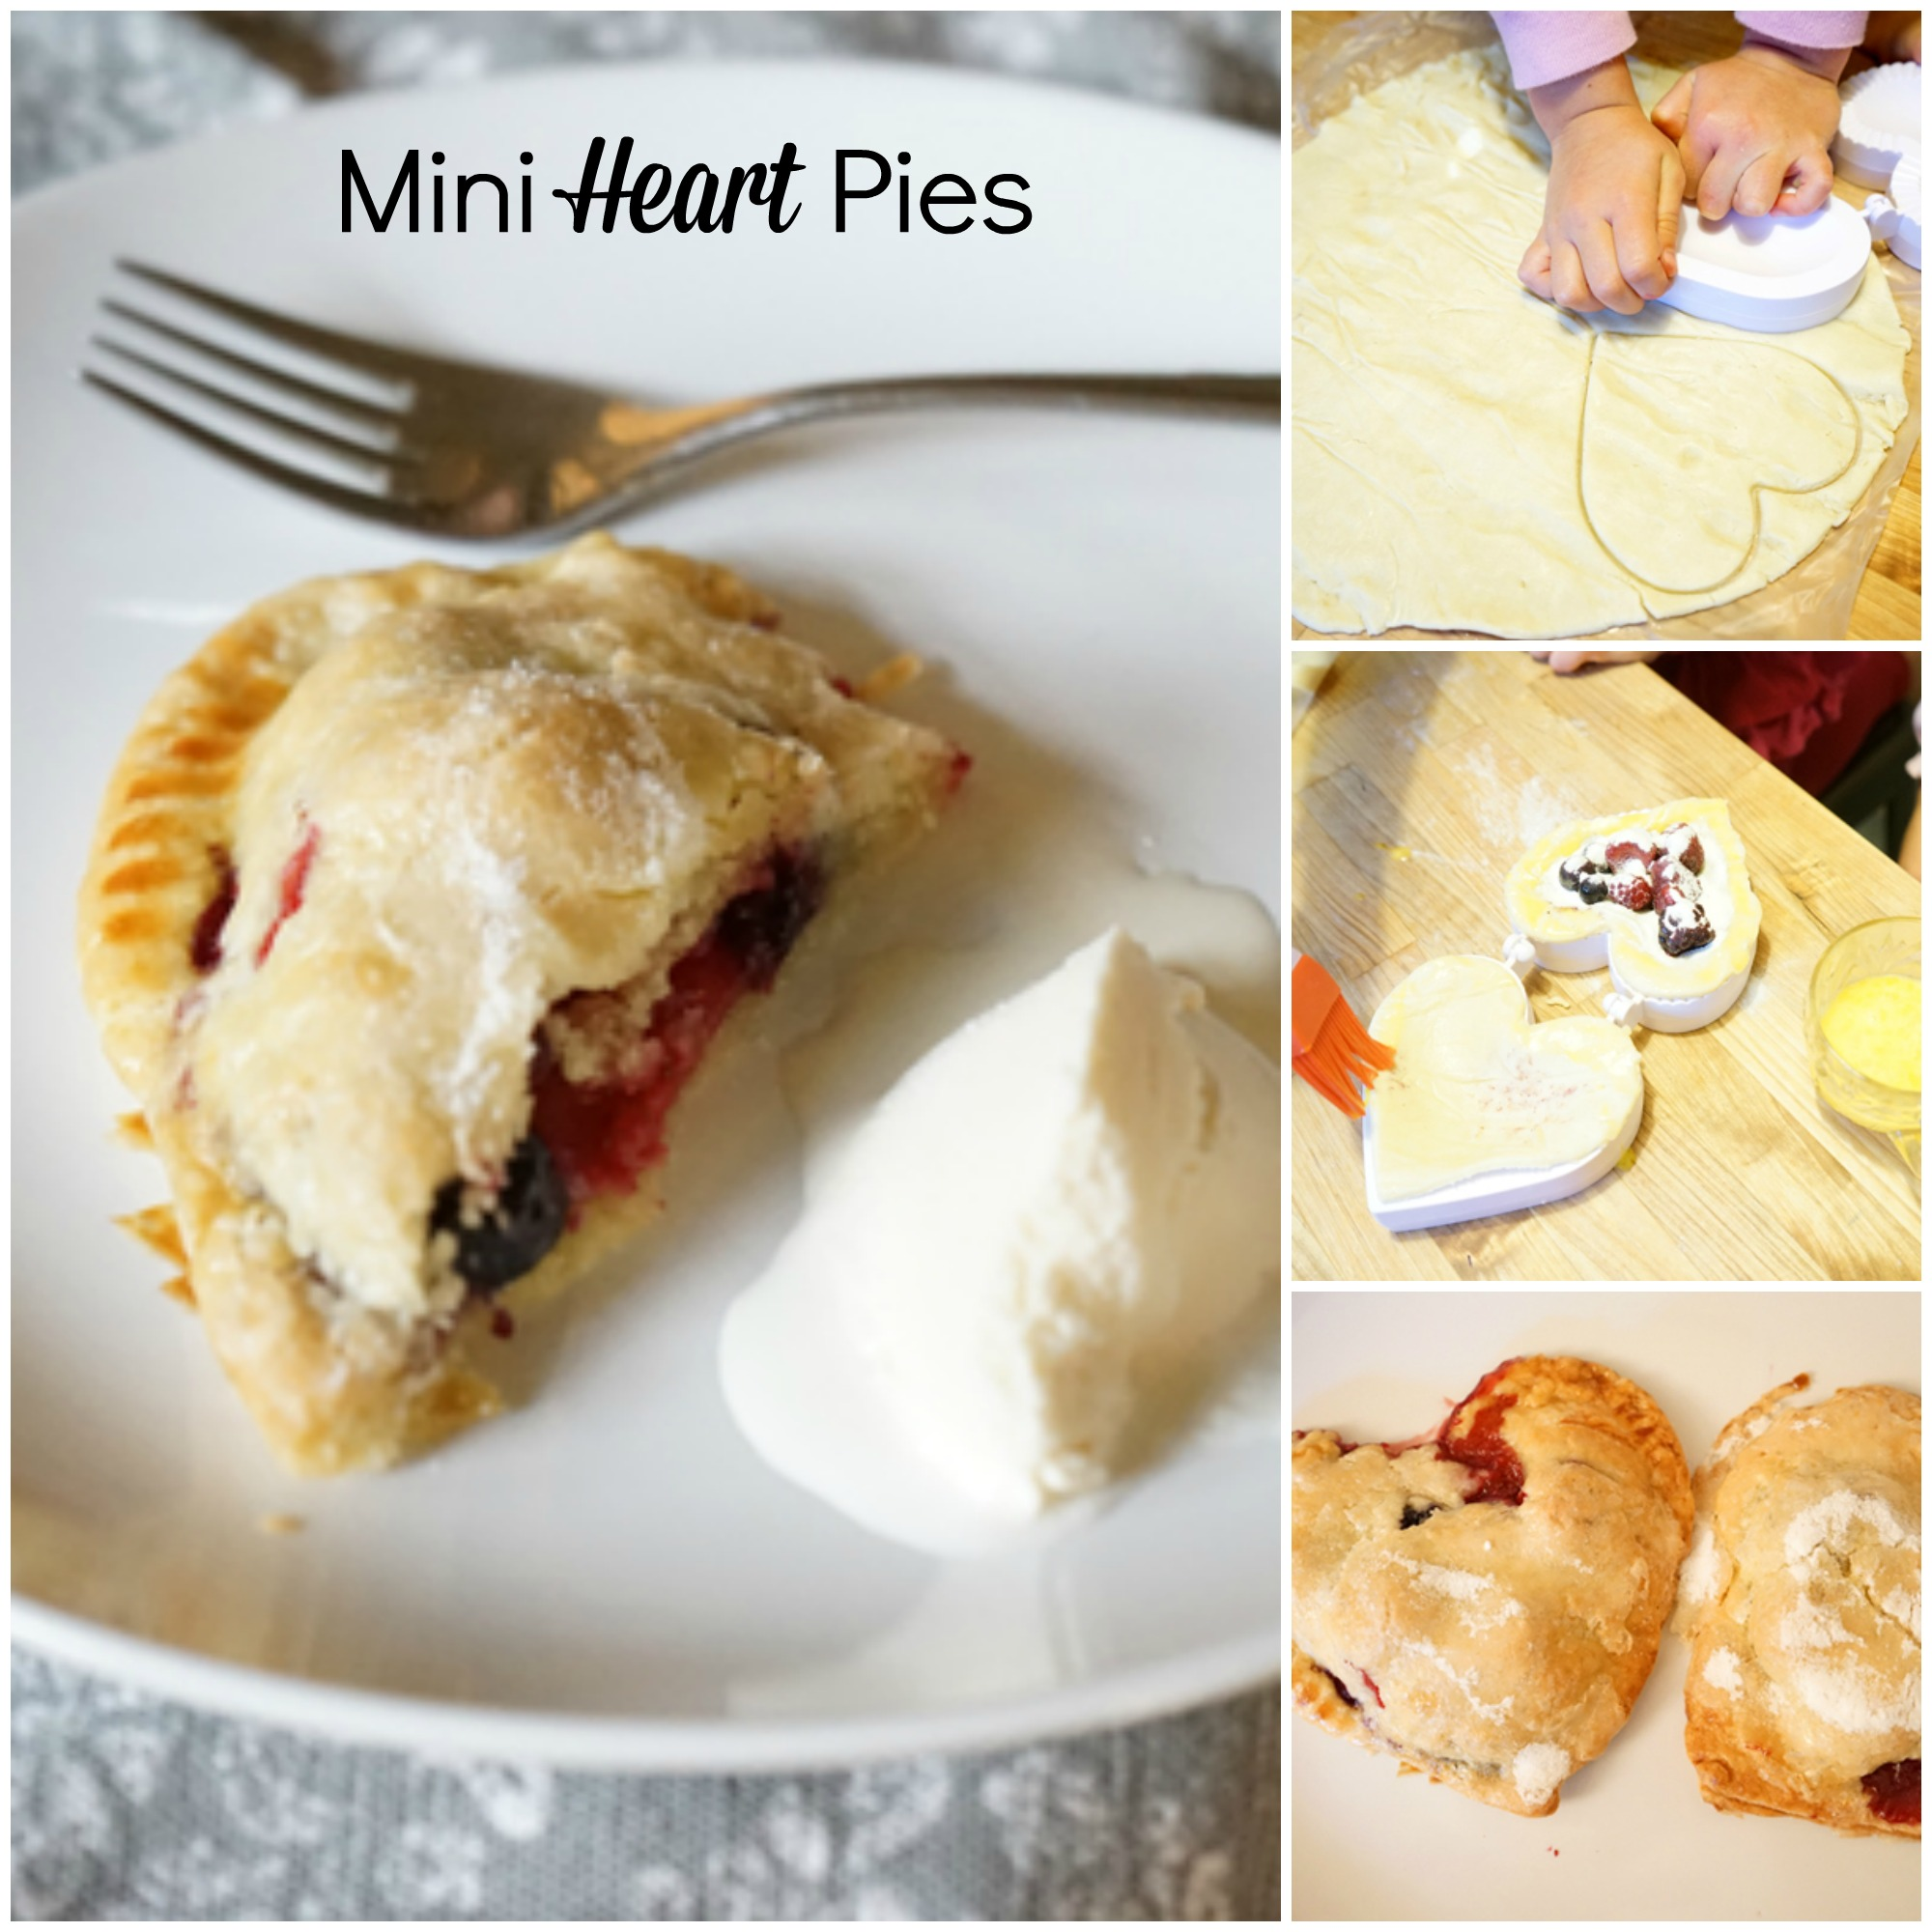 Yum! We love making (and eating) these heart shaped hand pies.